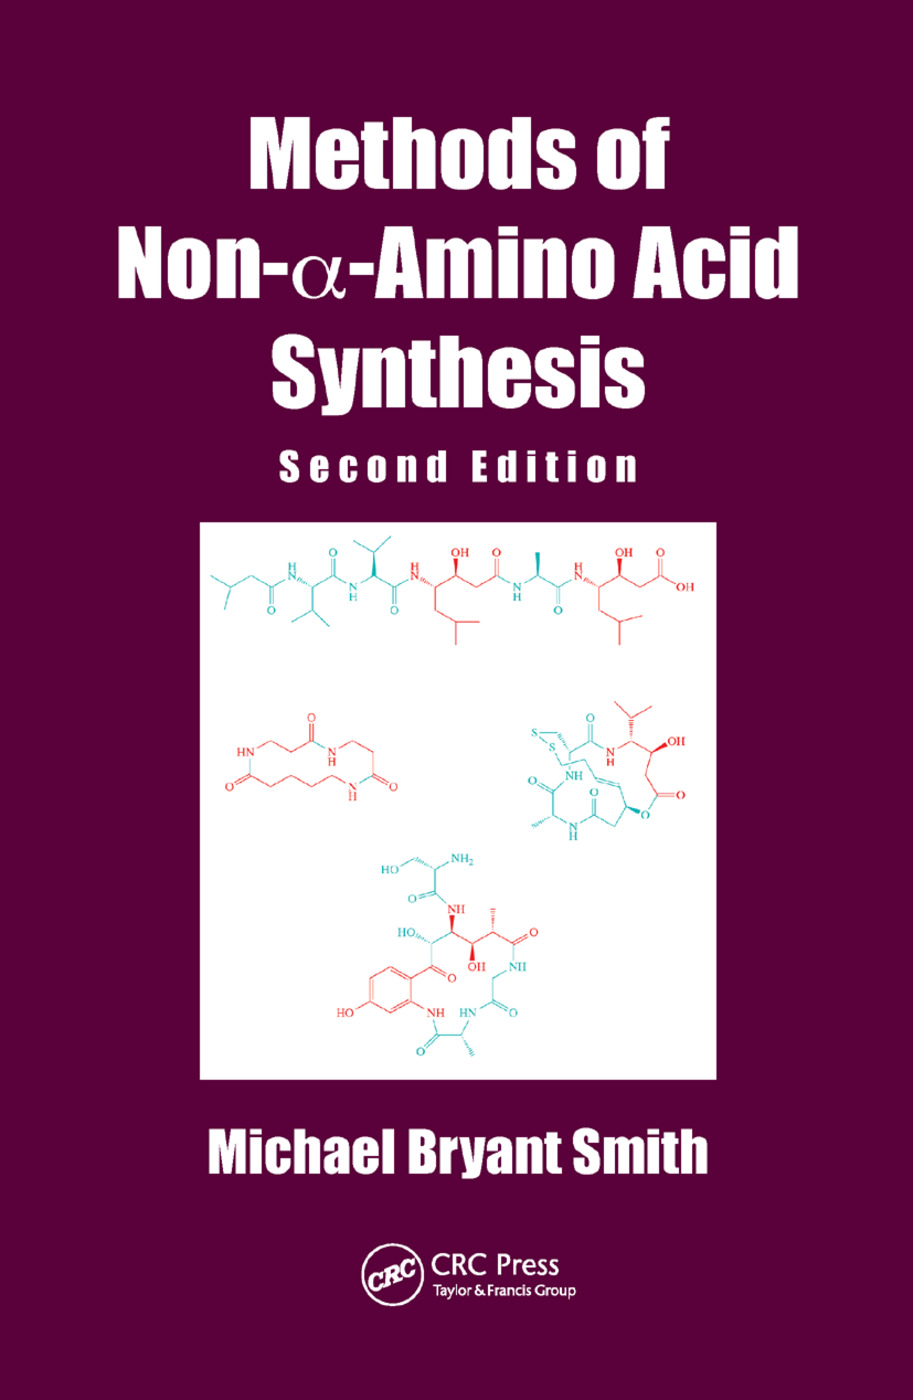 Methods of Non-a-Amino Acid Synthesis